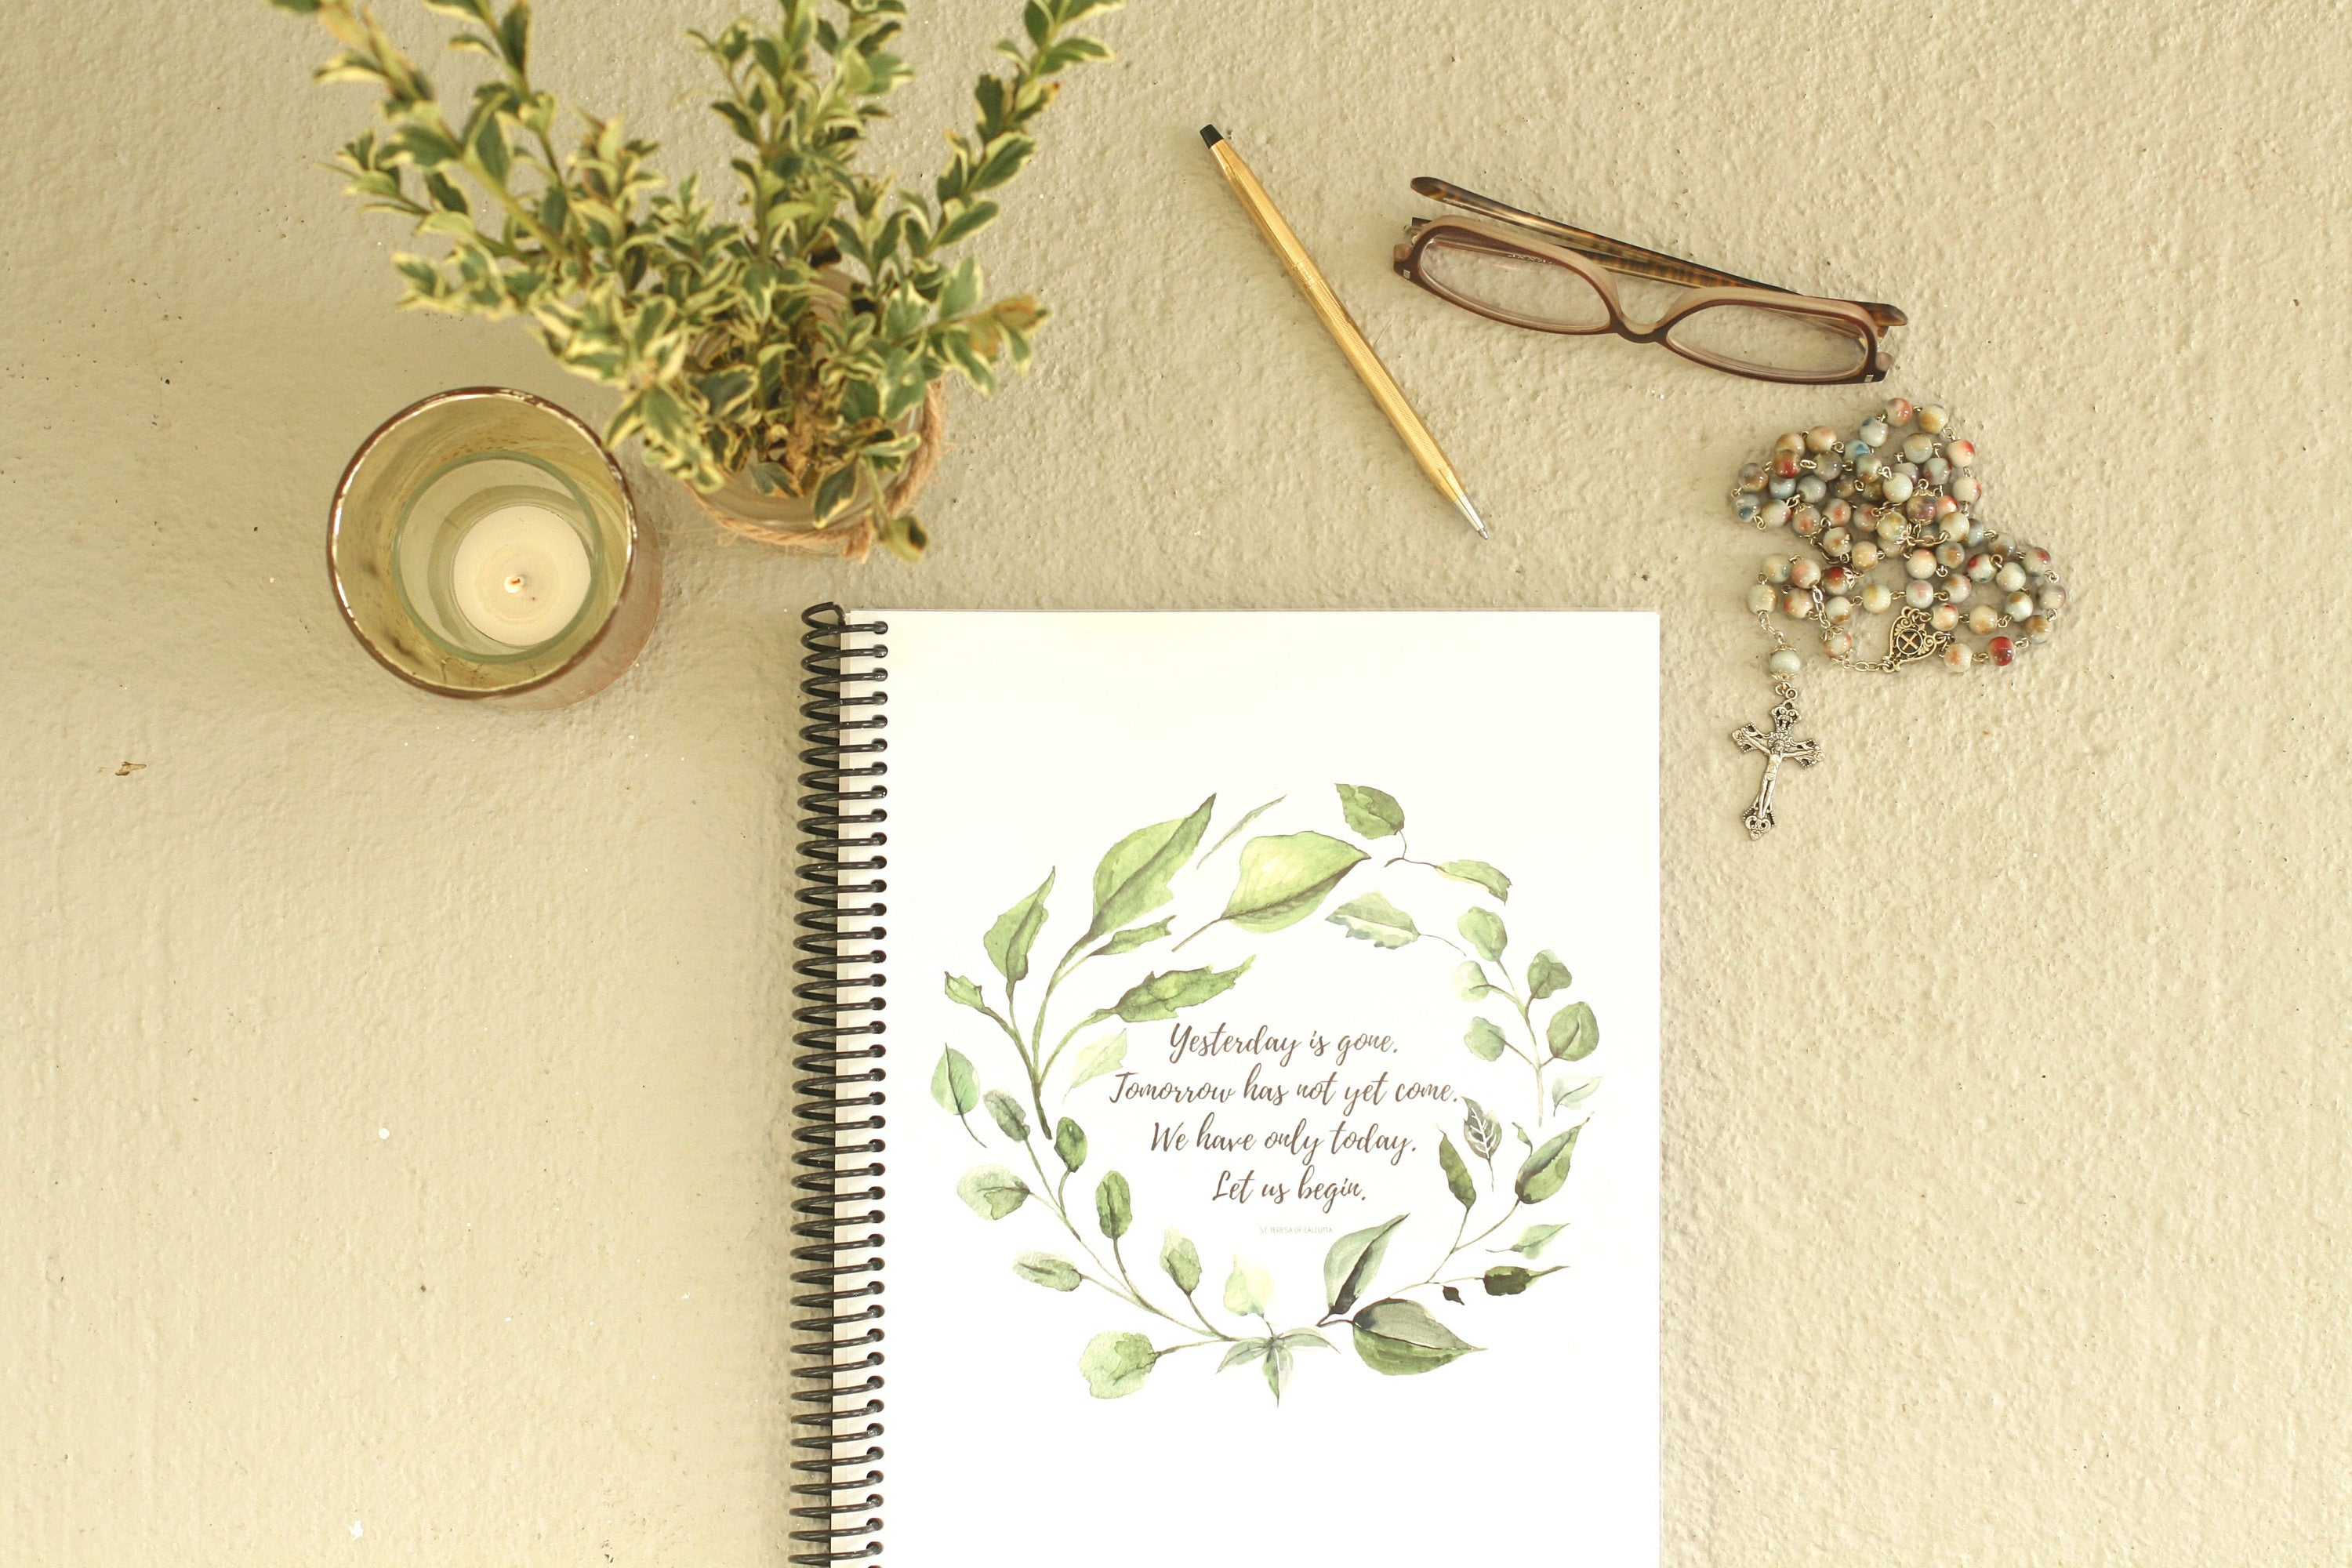 2019 -2020 Catholic Planner: Catholic Liturgical Calendar / Homeschool  Planner / Daily, Weekly, Monthly Planner / Catholic Saints And Year intended for 2020 Catholic Liturgical Calendar Activities